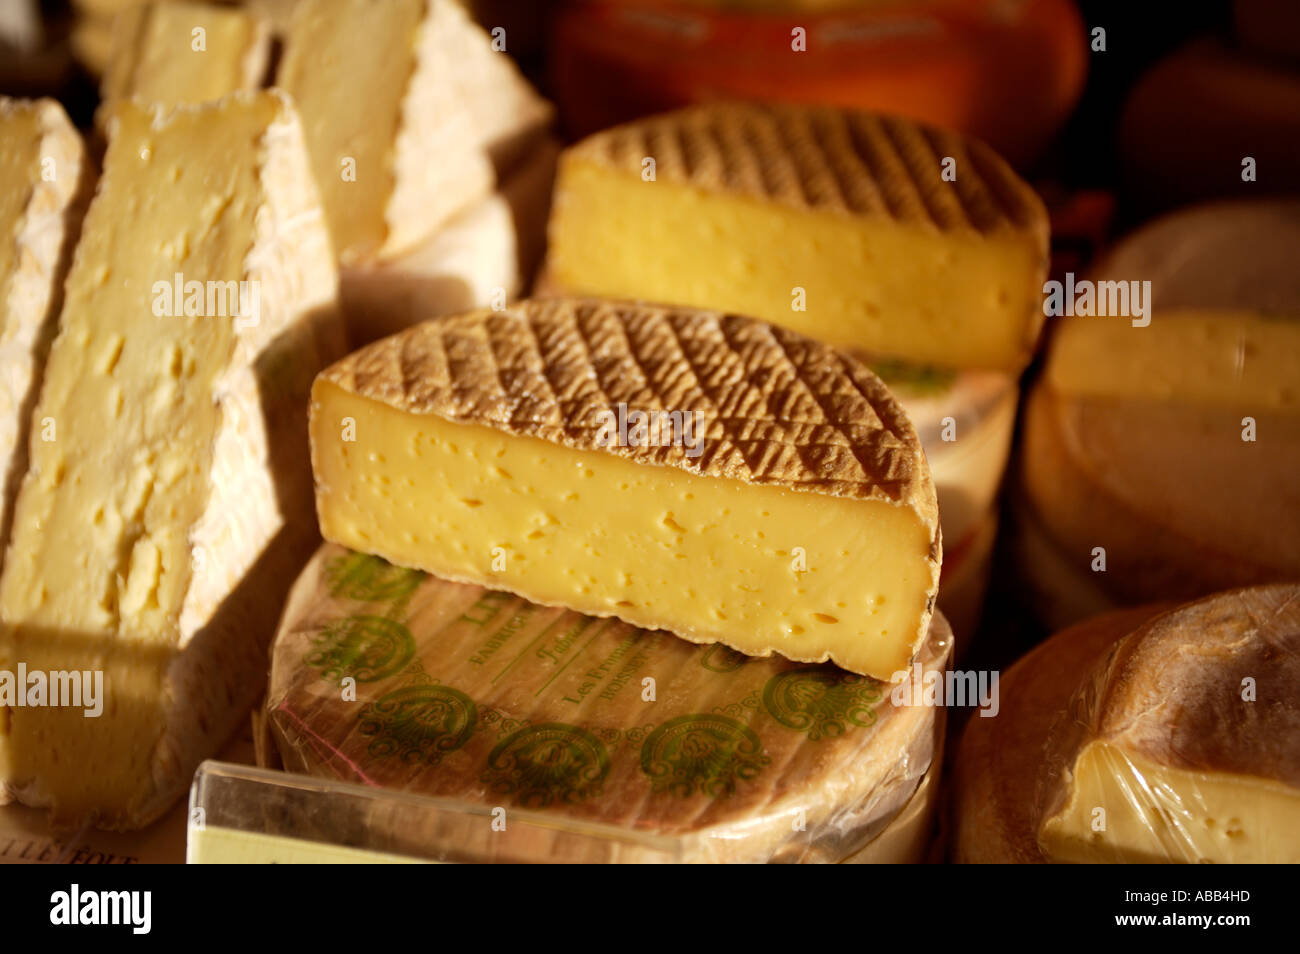 Paris, Market, French Soft Cheese - Stock Image